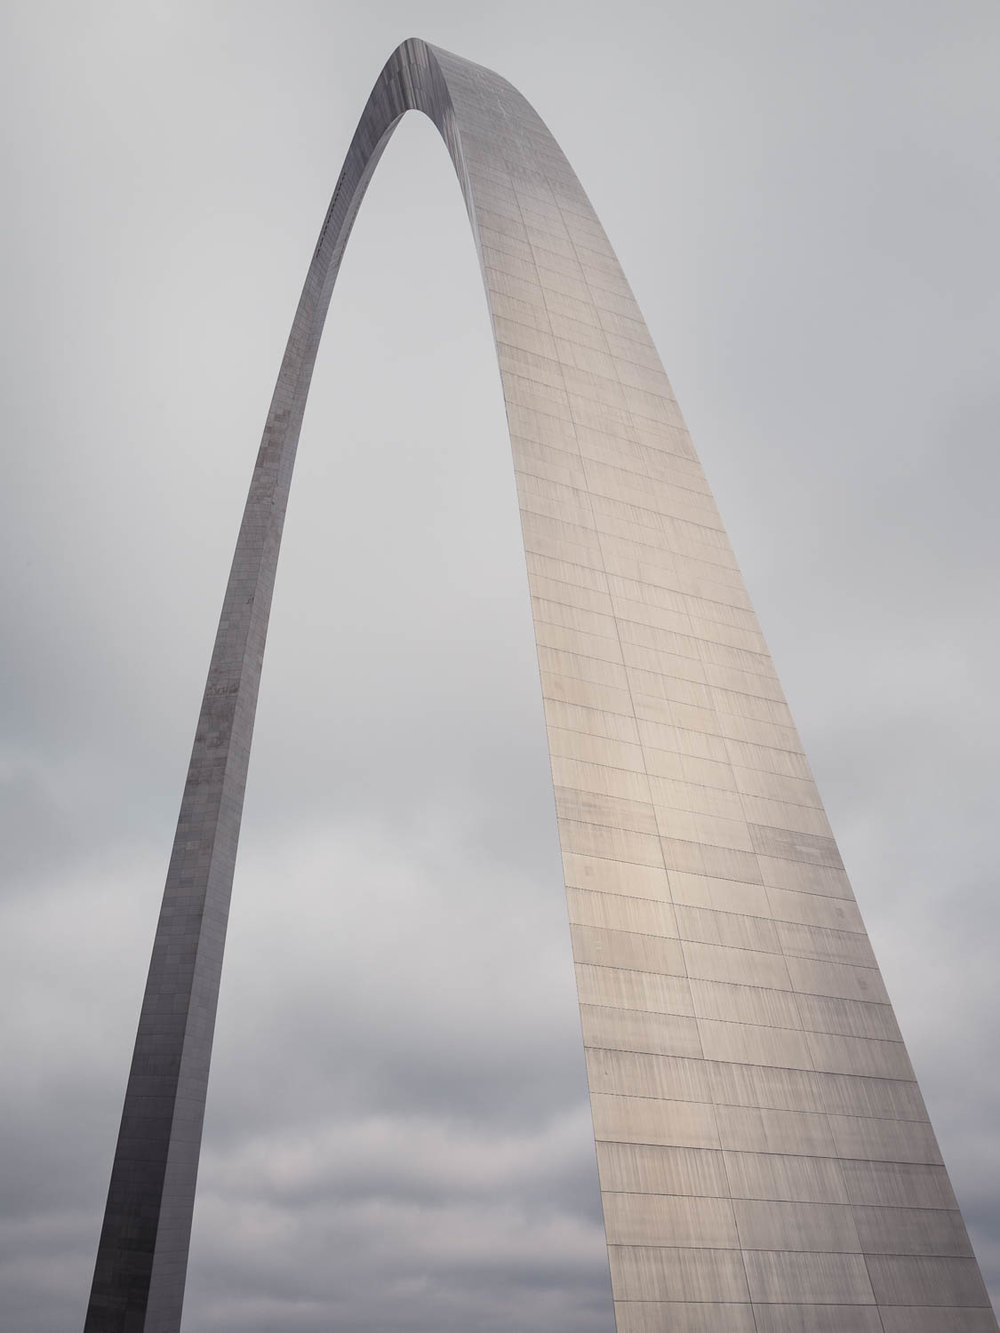 St-Louis-Arch-20180211-1140034-WebUseOnly.jpg